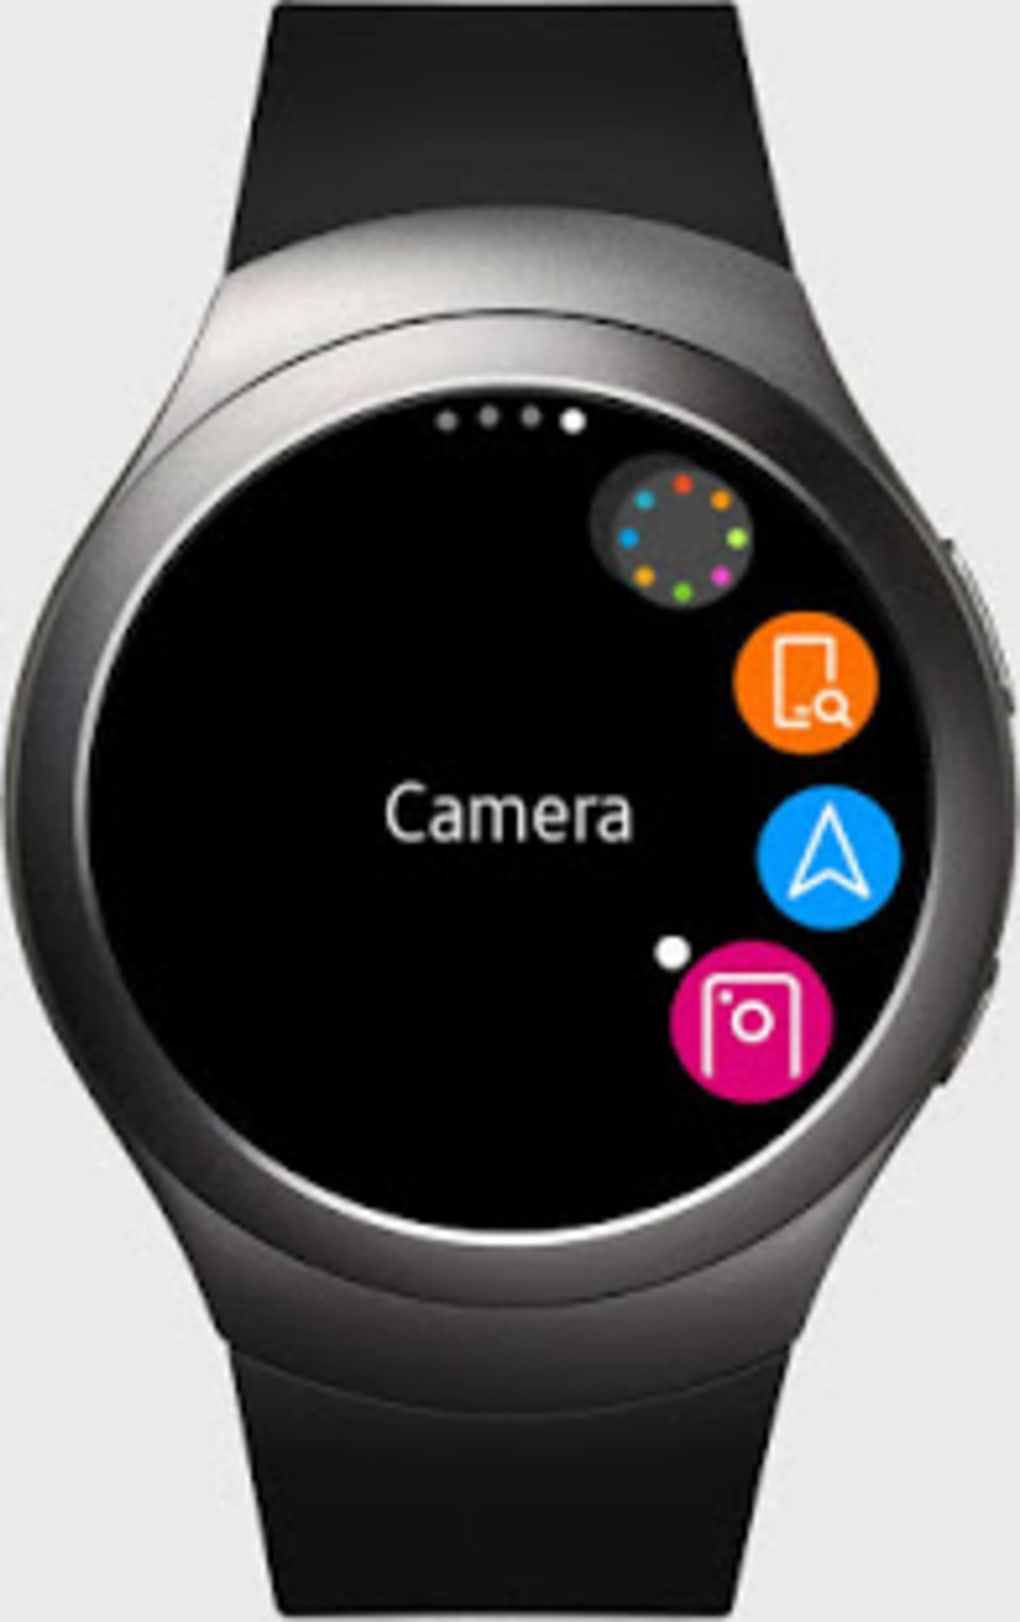 Camera Pro - Remote Control for Samsung Watch for Android